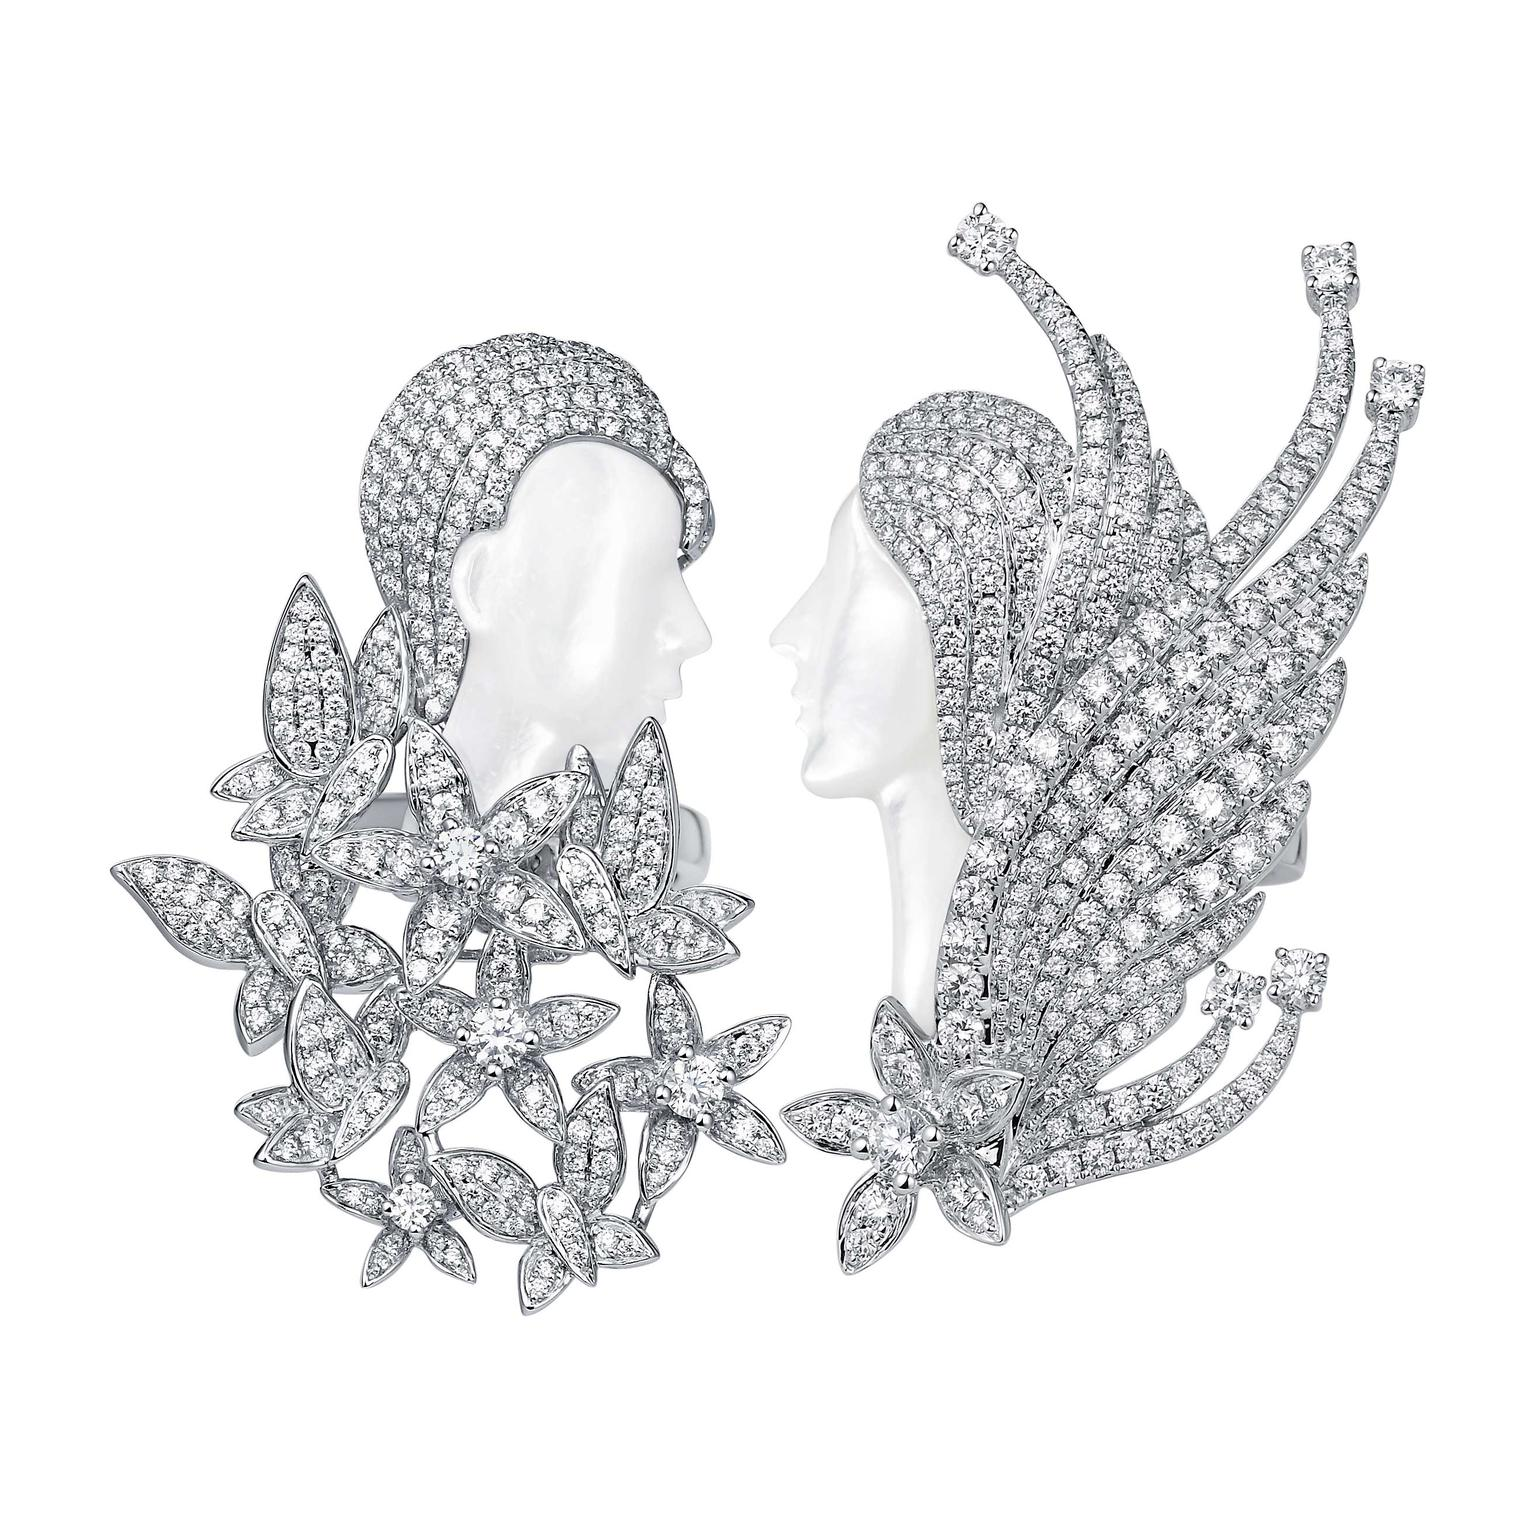 Sarah Zhuang white gold and diamond rings and brooch Long Distance Love